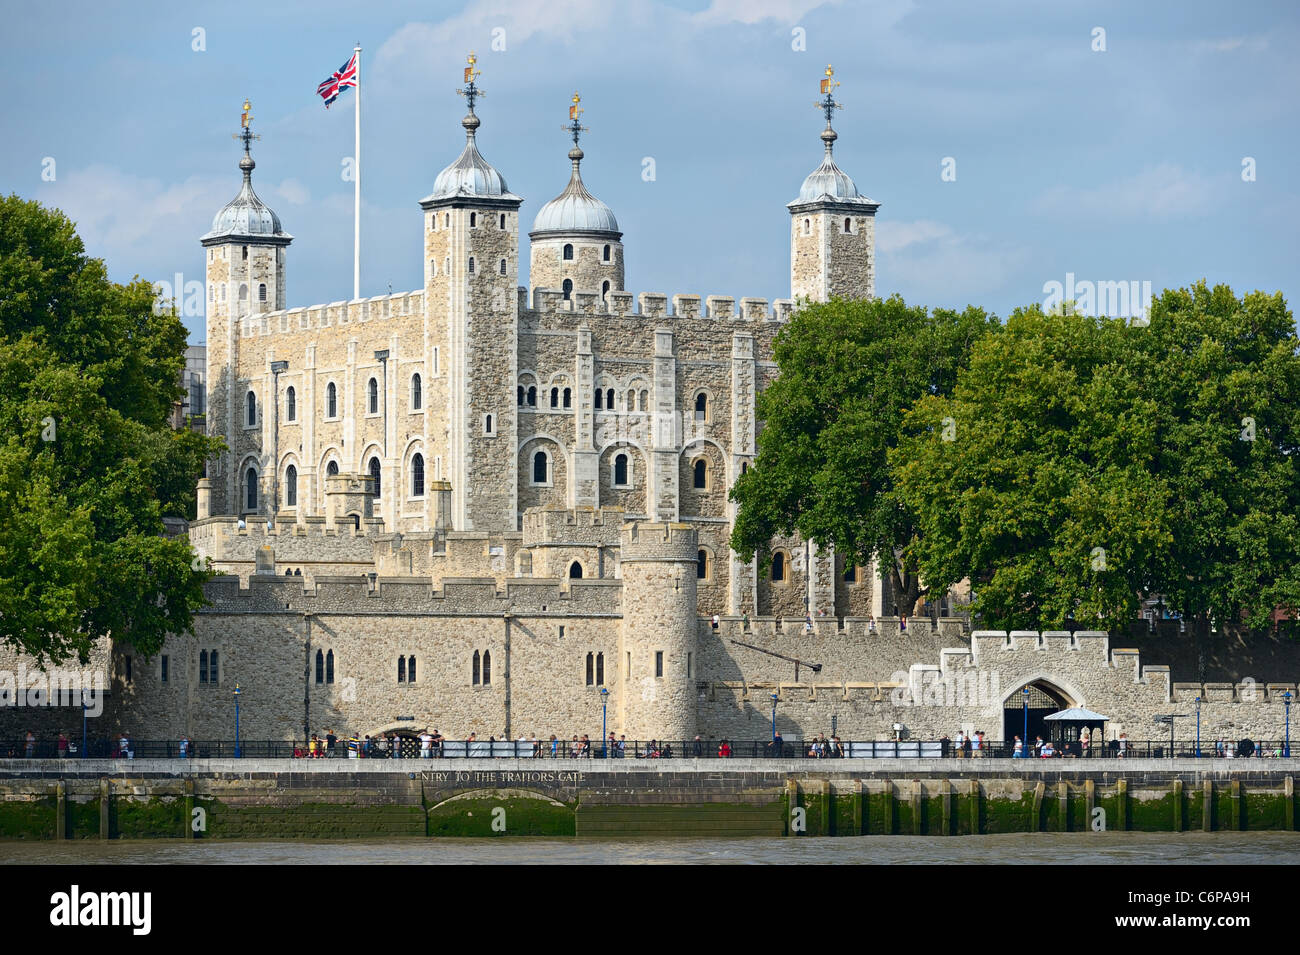 White Tower of Her Majesty's Royal Palace and Fortress -- the Tower of London Stock Photo